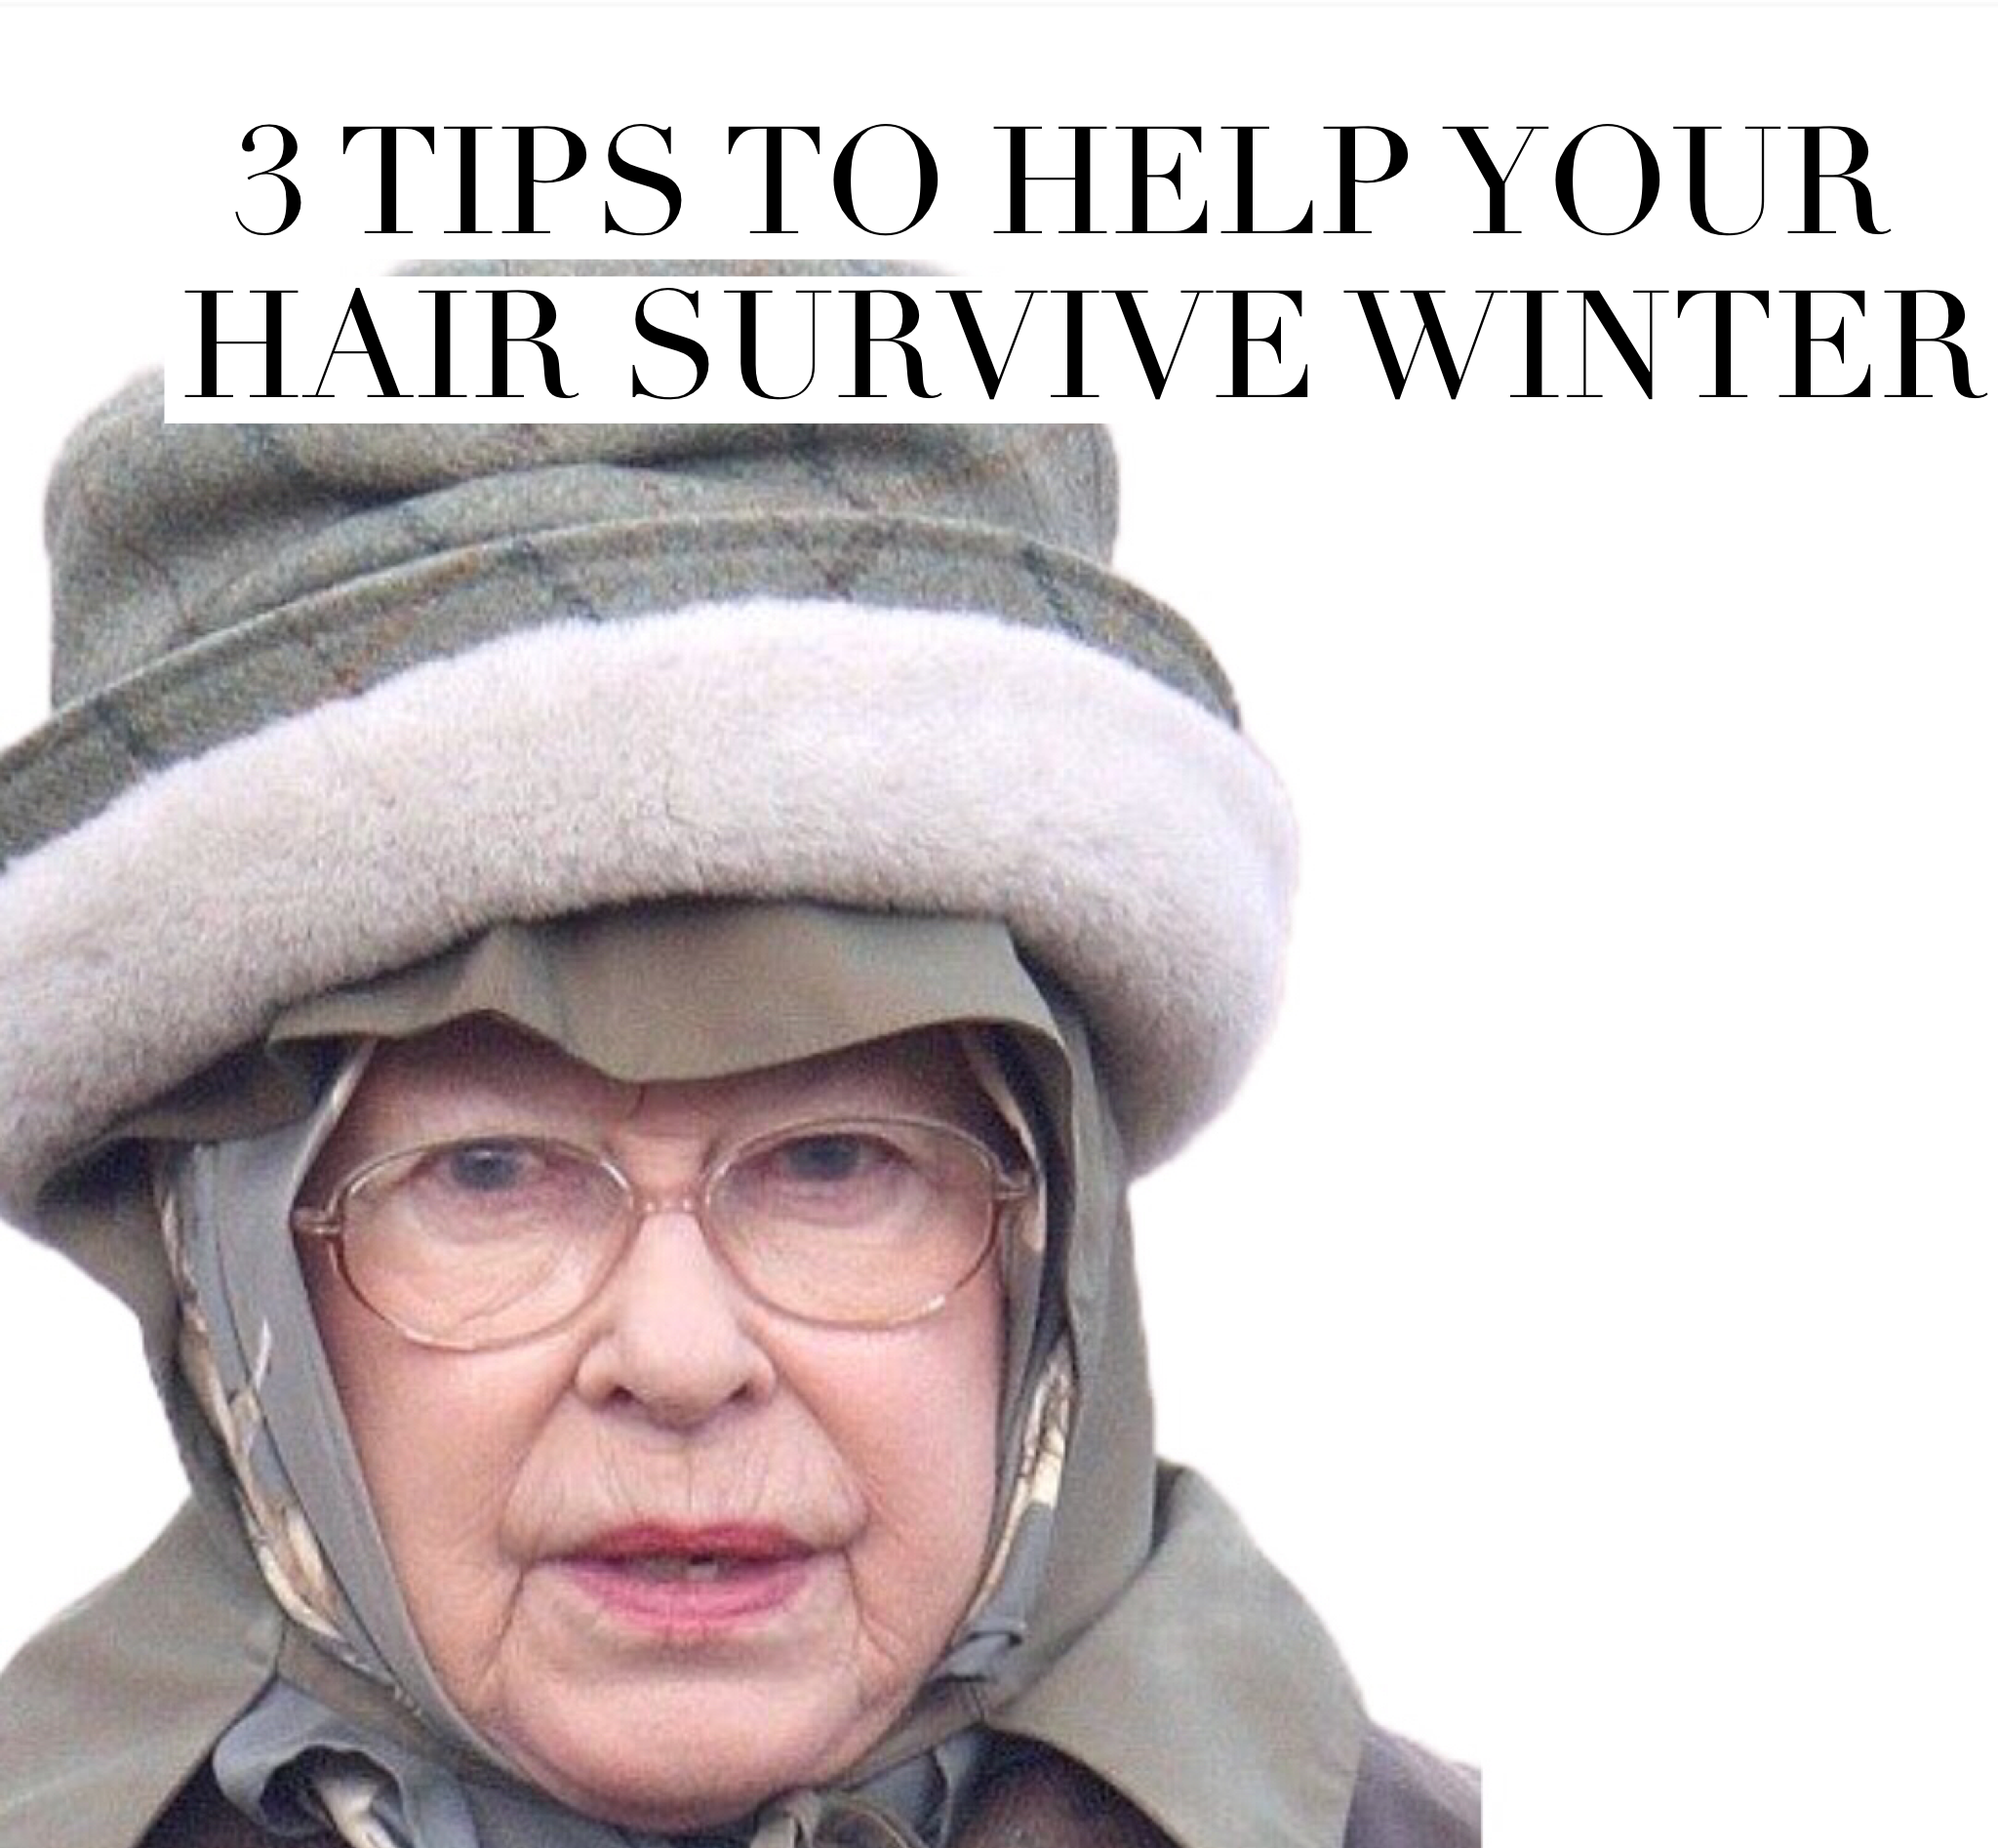 3 TIPS TO HELP YOUR HAIR SURVIVE WINTER | 2017